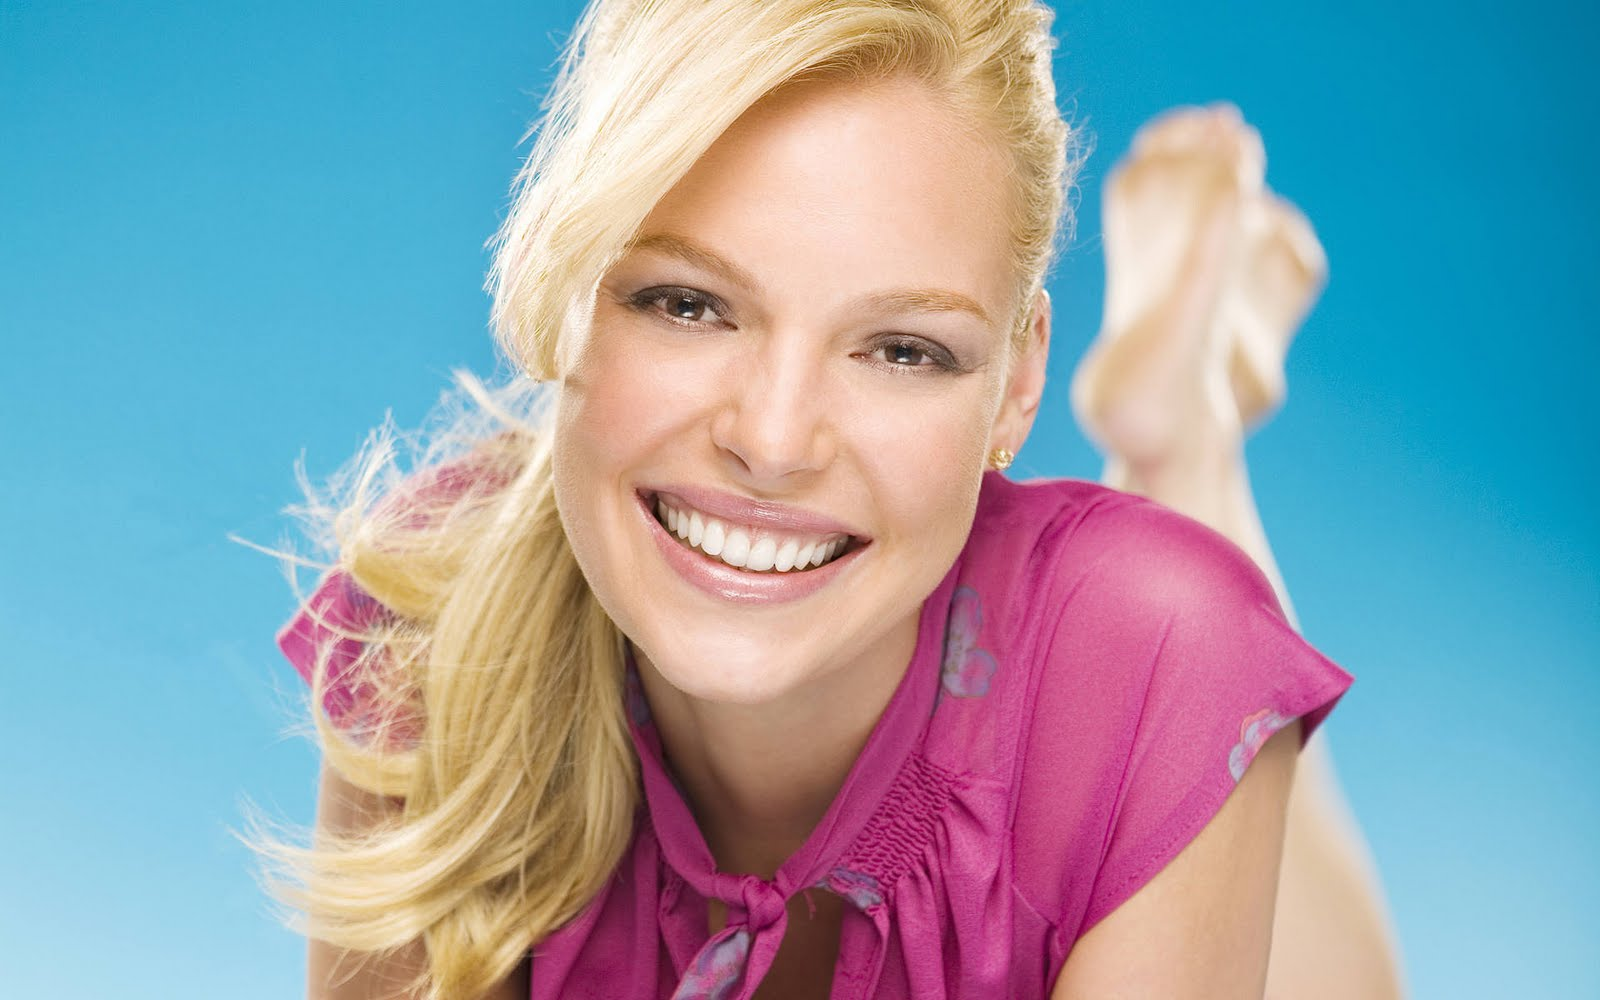 wallpapers hd katherine heigl wallpaper picture image photo 1jpg 1600x1000